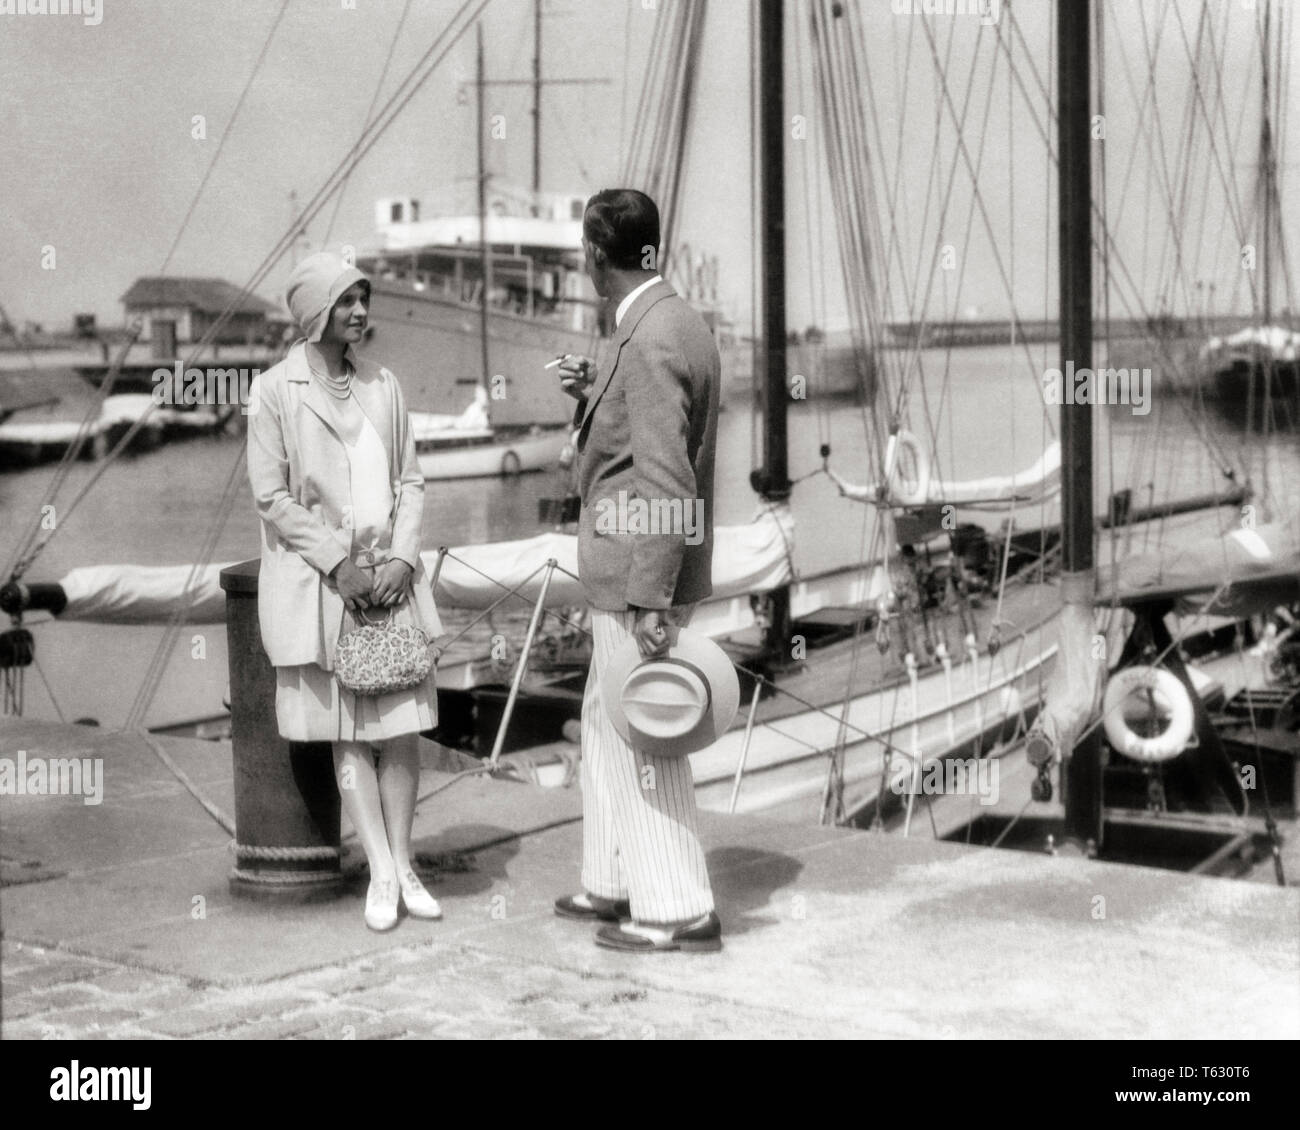 4acf18c7919 1920s WELL DRESSED STYLISH COUPLE STANDING TALKING TOGETHER MAN SMOKING  CIGARETTE YACHT MARINA DEAUVILLE FRANCE -